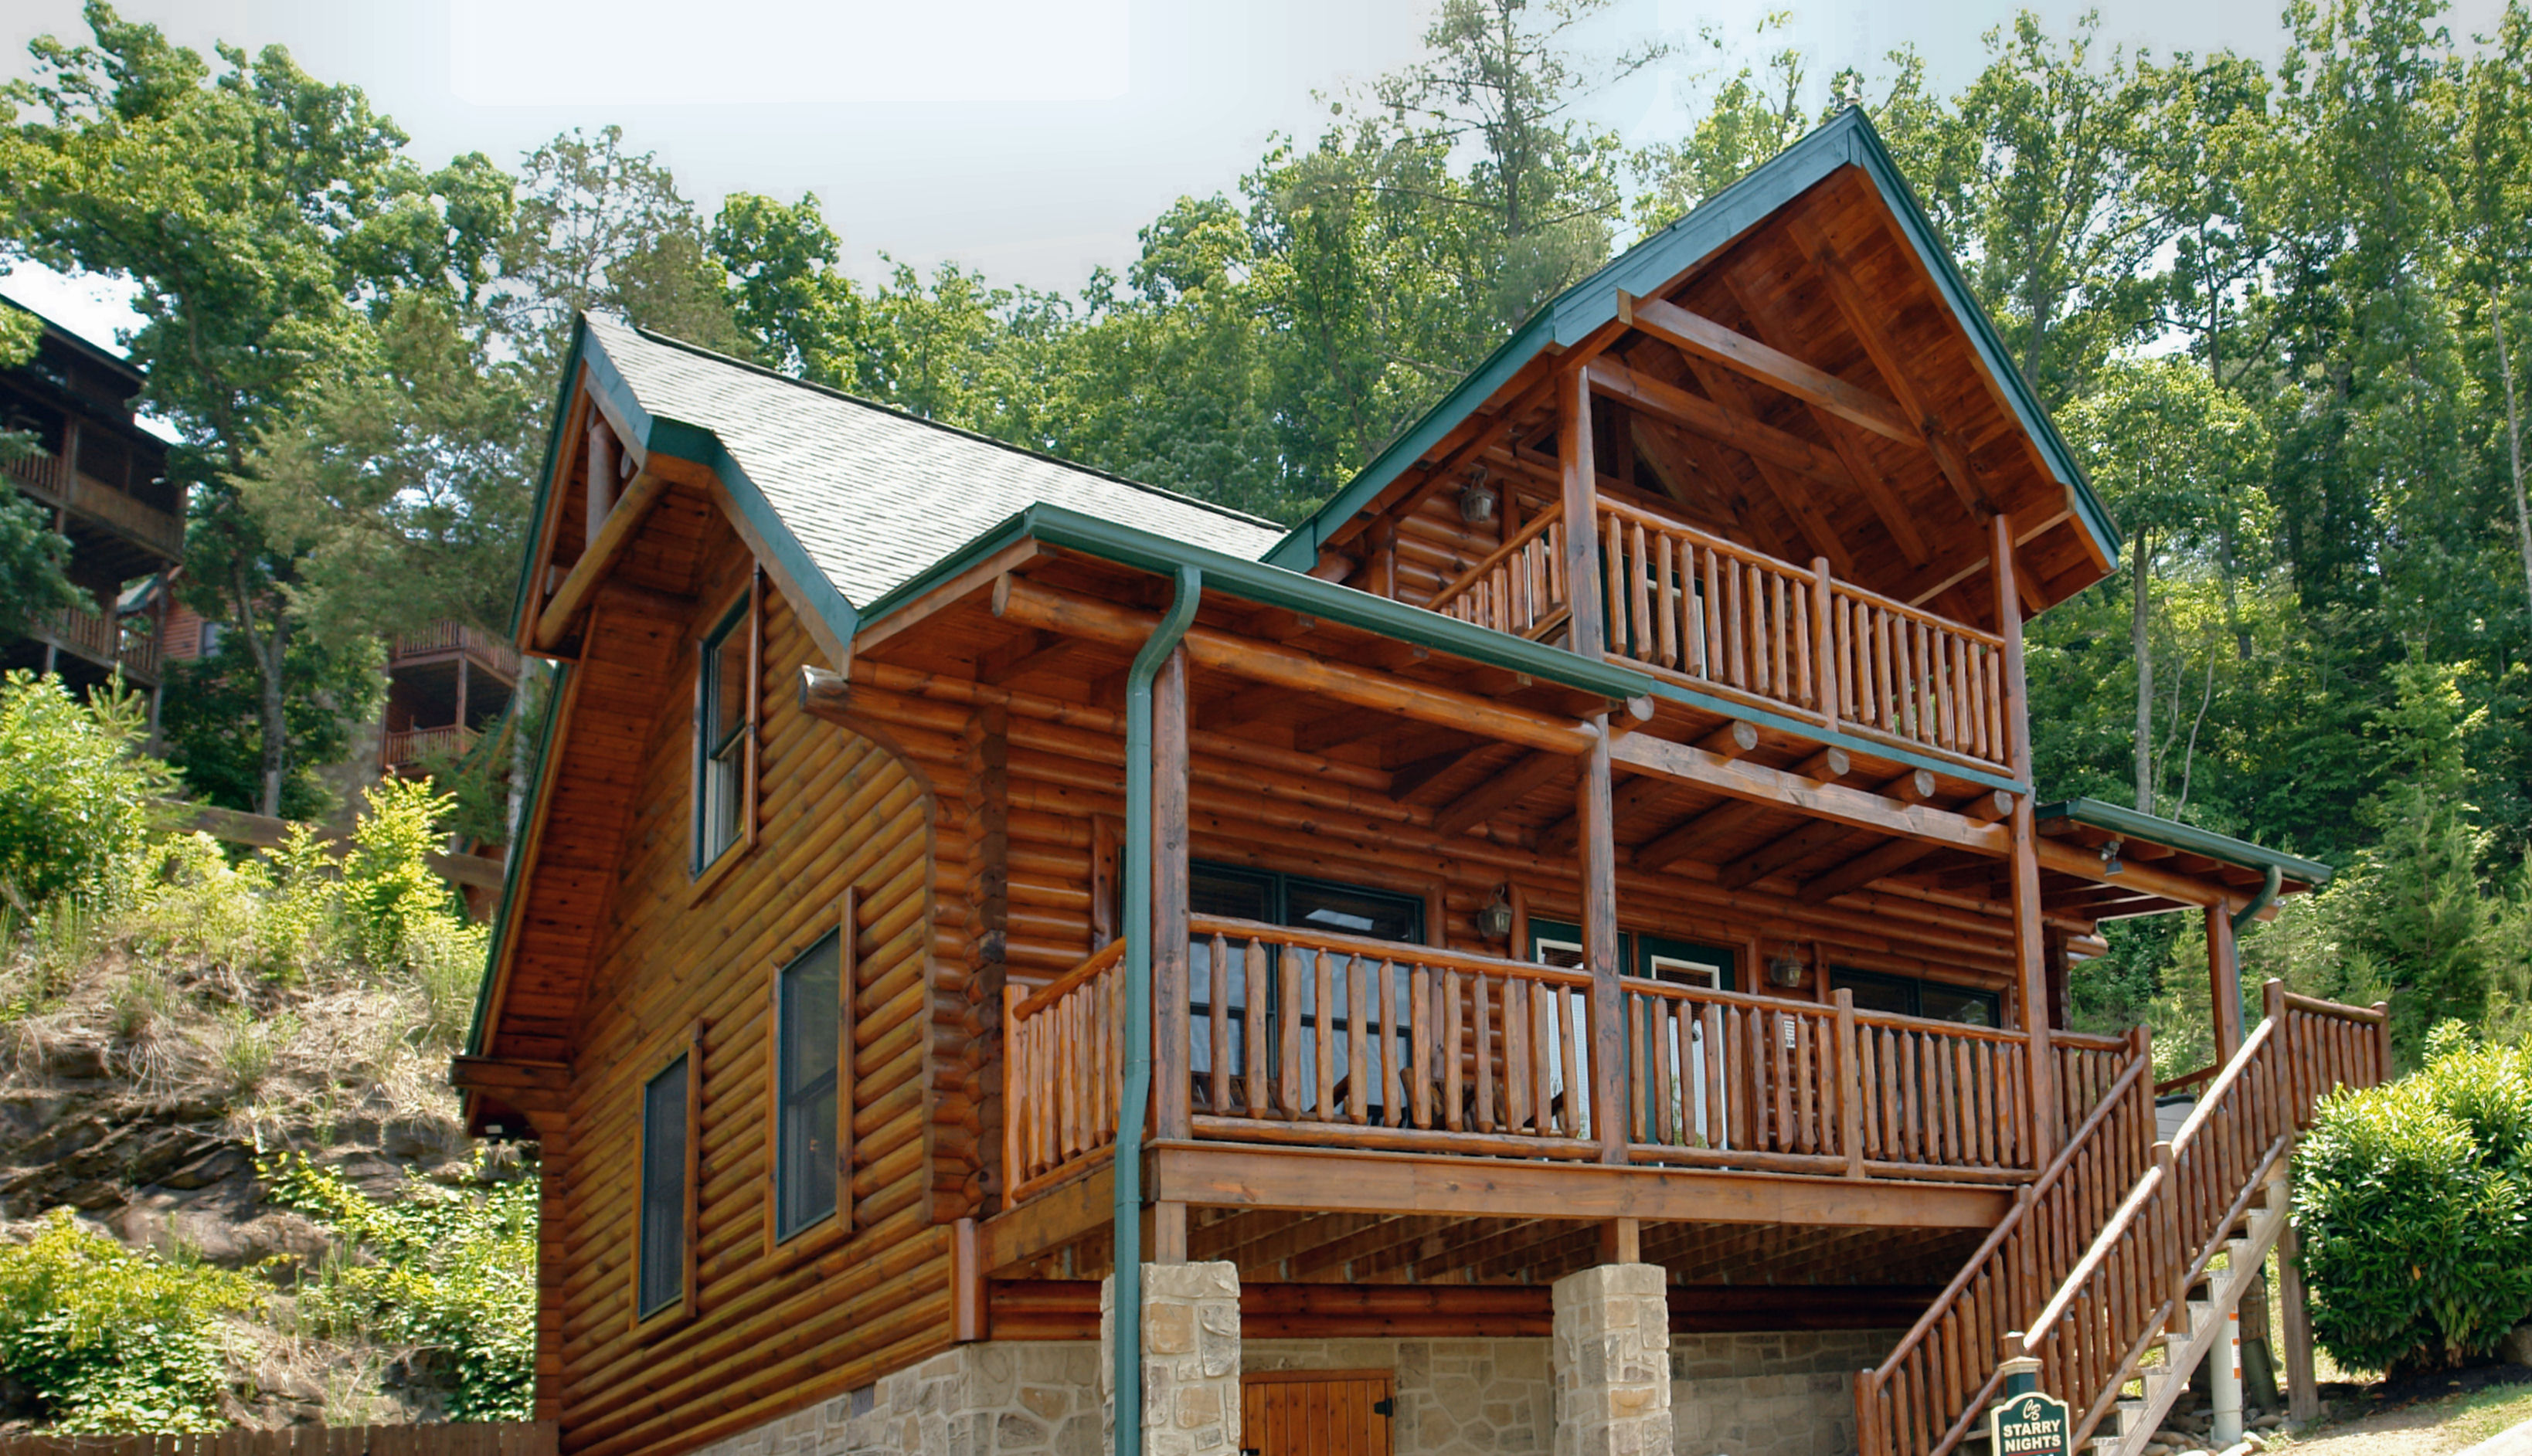 cabin douglas two twobedroom fireside and chalets rental chalet pigeon rent lake bedroom rentals for cabins forge tennessee dsc